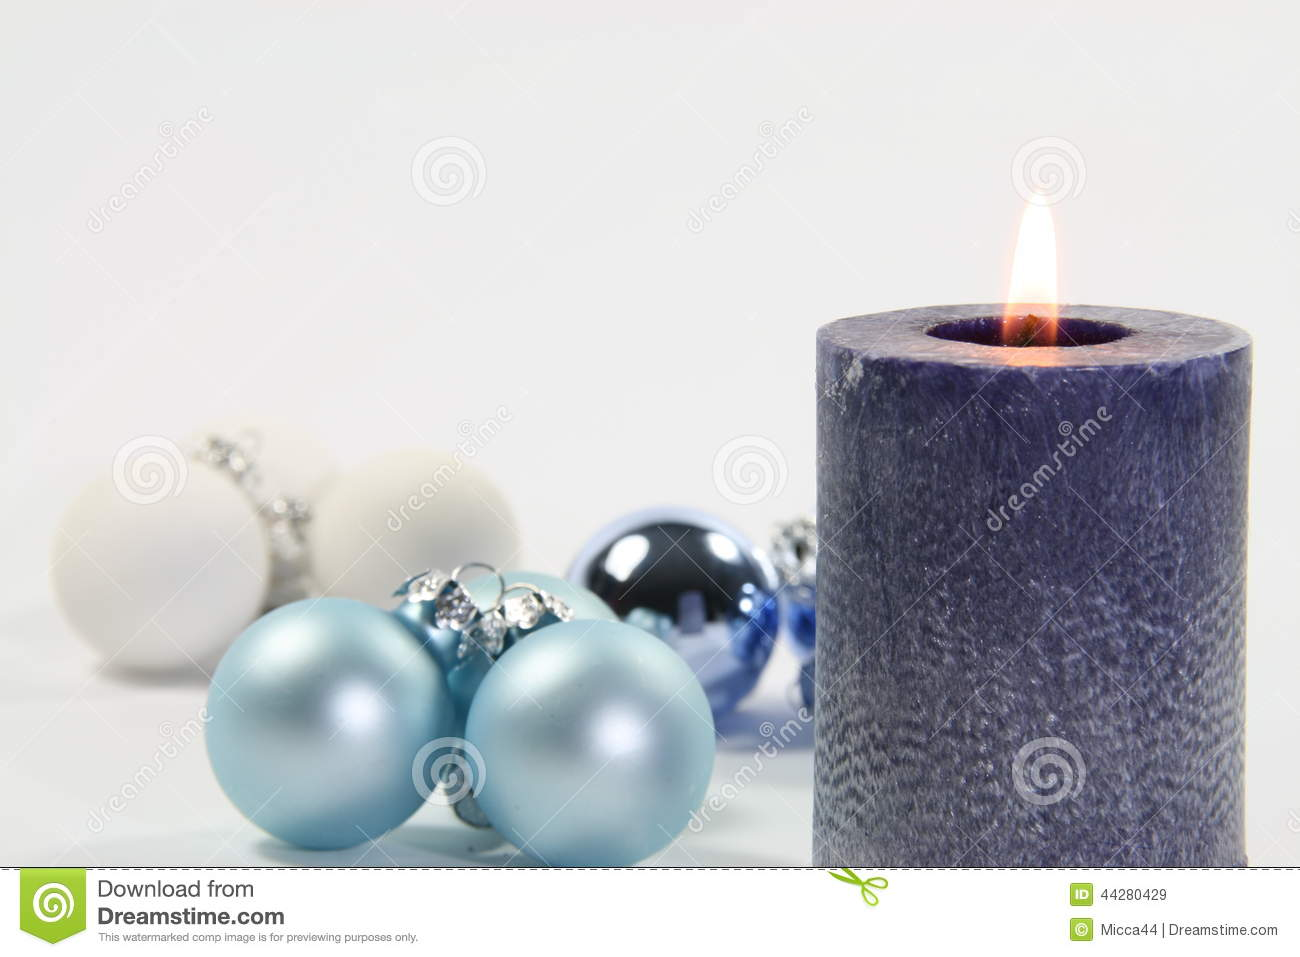 Blue Candle And White Background Stock Image - Image of season ... for Blue Candle White Background  131fsj